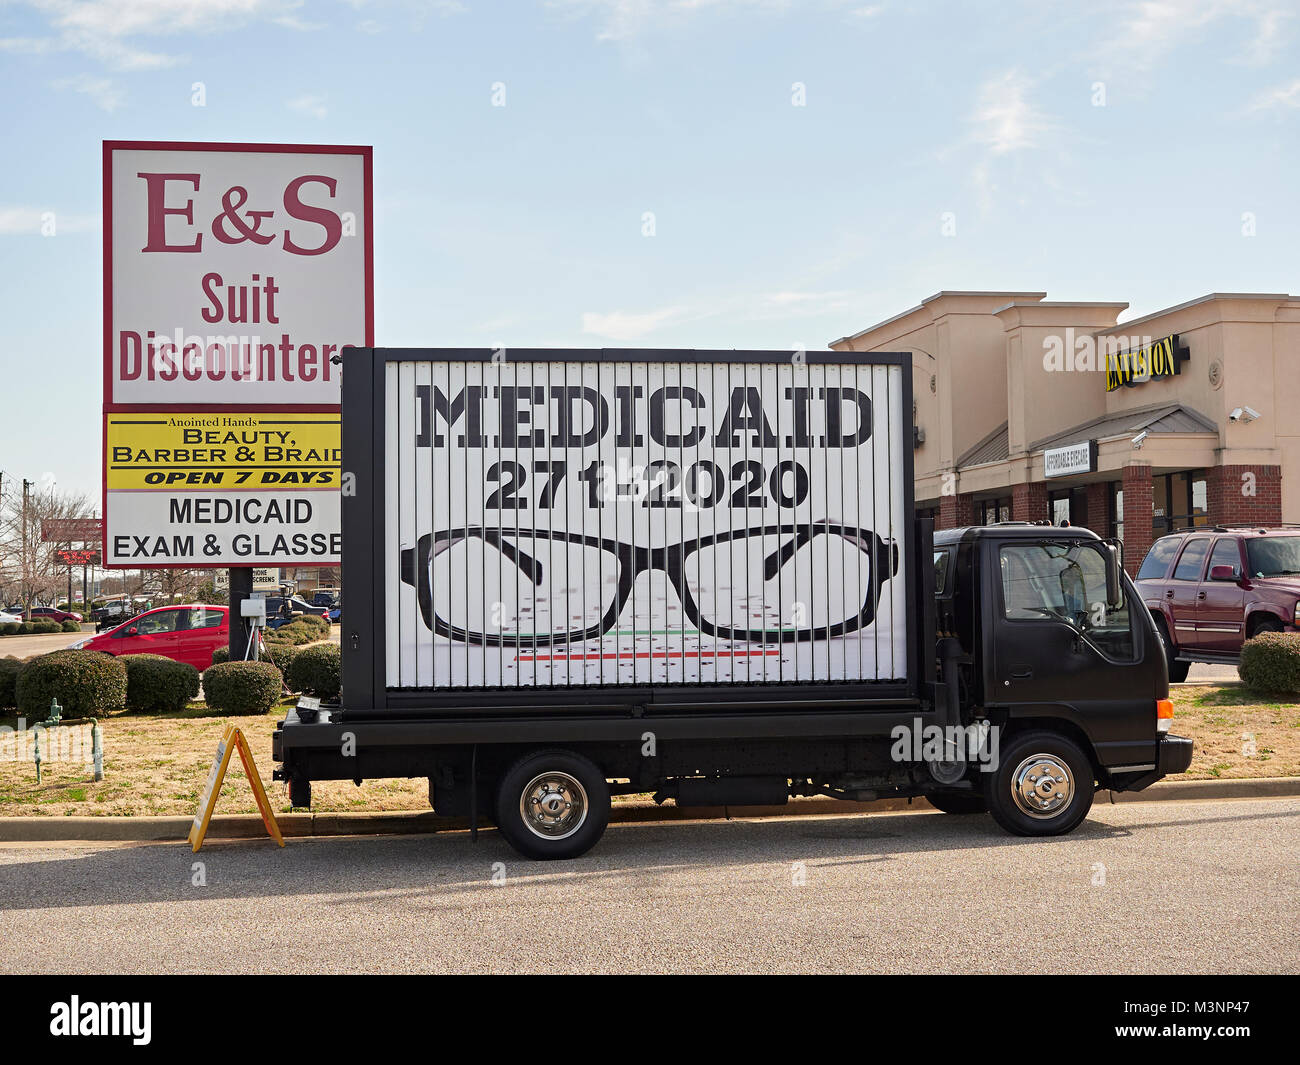 Large sign on a truck advertising Medicaid free eye exams for the poor in Montgomery, Alabama USA.  Free healthcare - Stock Image